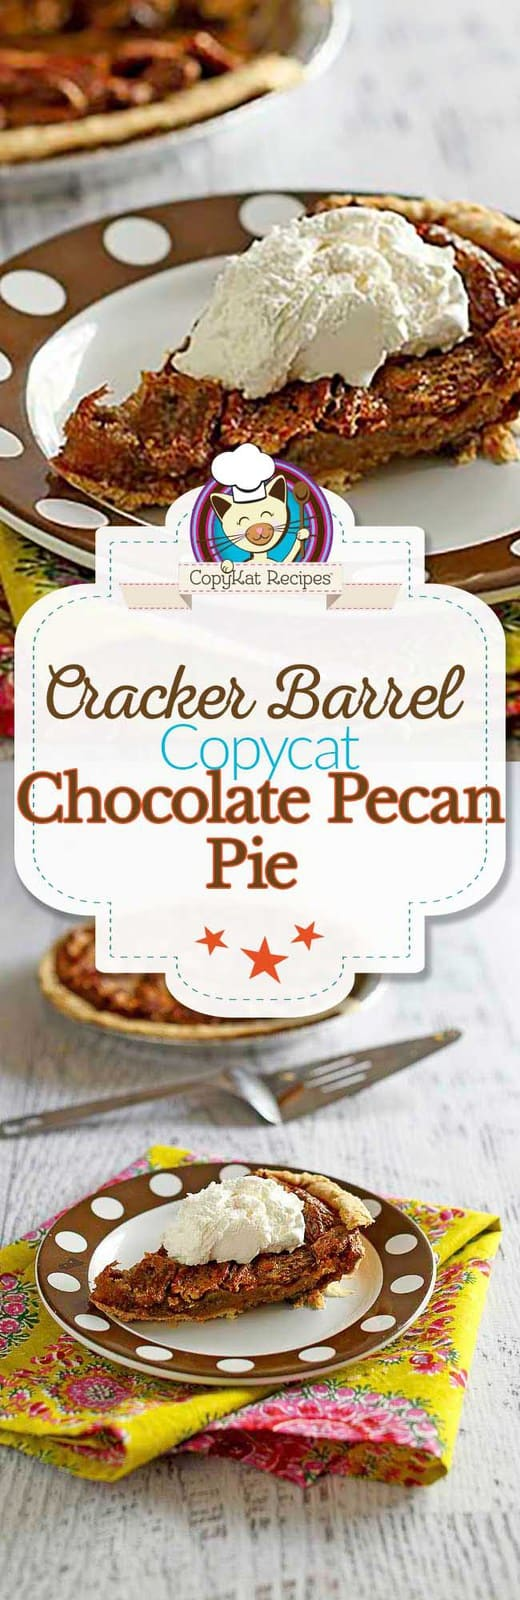 You can recreate the Cracker Barrel Chocolate Pecan Pie at home with this copycat recipe.